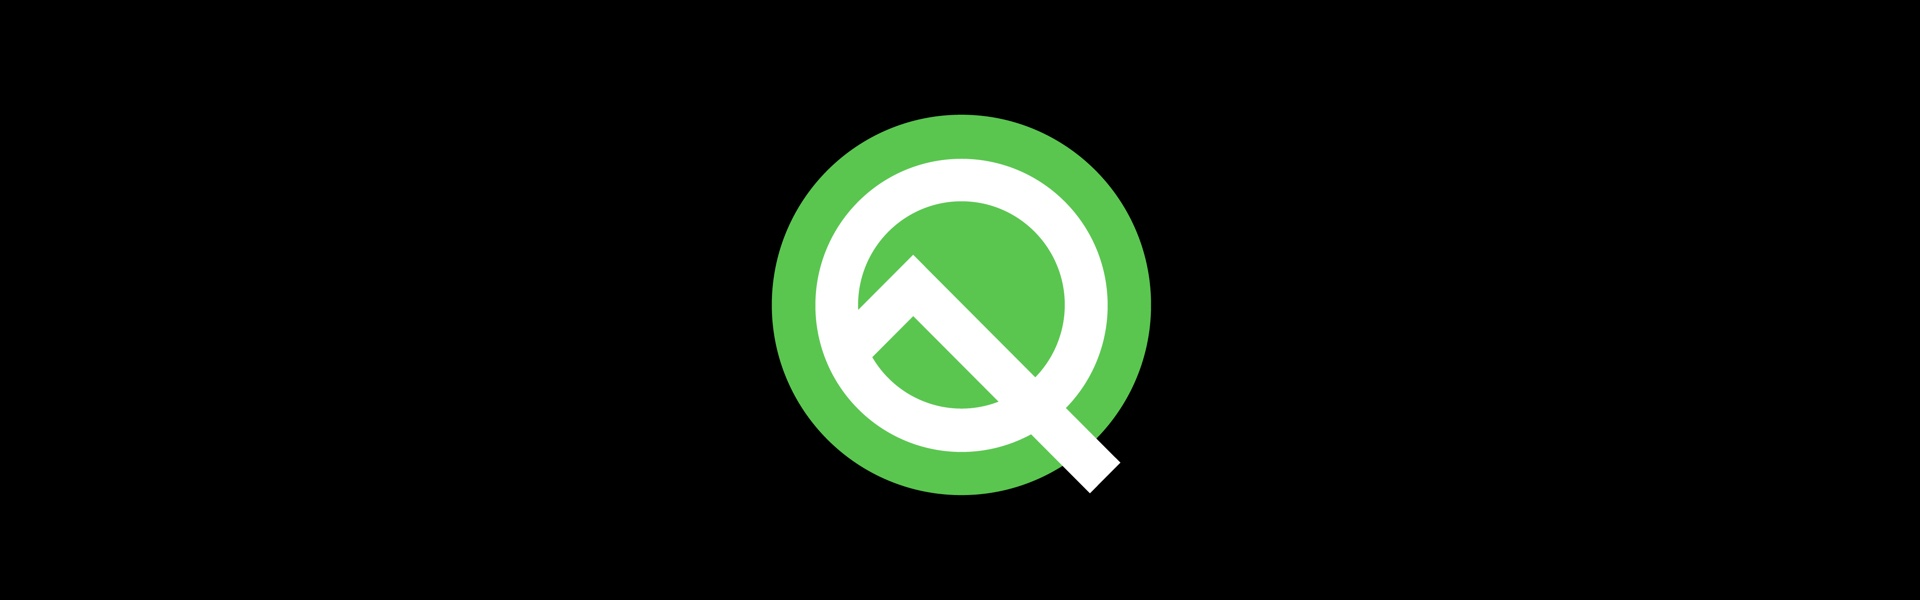 Android Q Features: What's New in Display and Under Hood